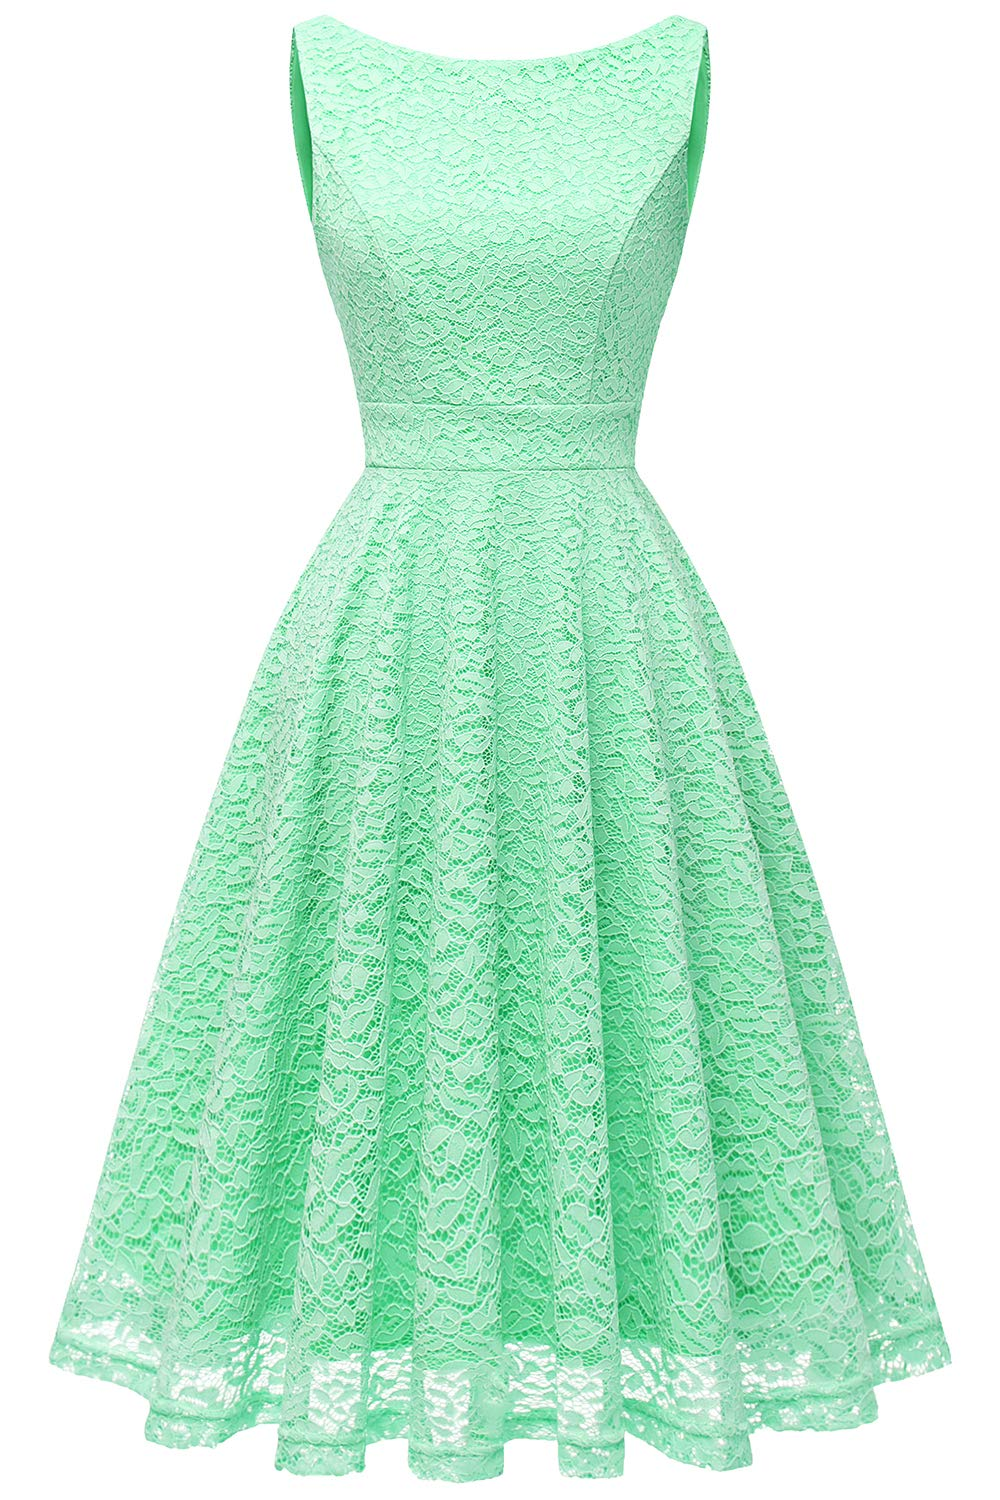 Bbonlinedress Women's Short Floral Lace Bridesmaid Dress V-Back Sleeveless Formal Cocktail Party Dress Mint XL